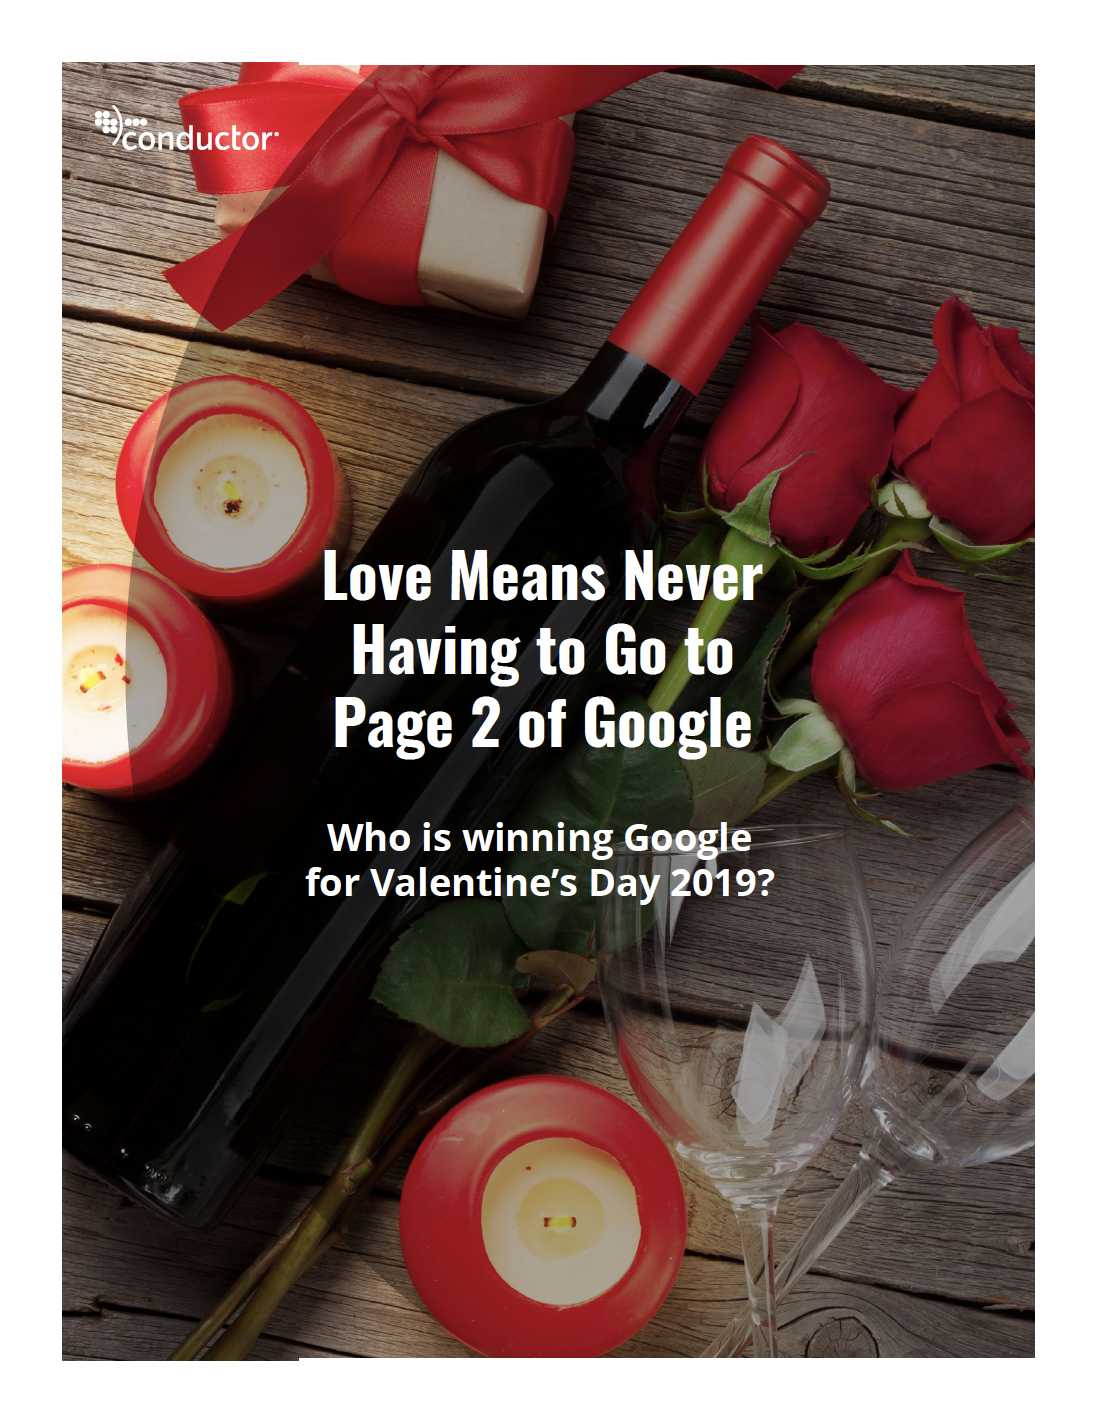 Conductor's Valentine's Day SEO research for 2019 reveals new insights into seasonal retail marketing.